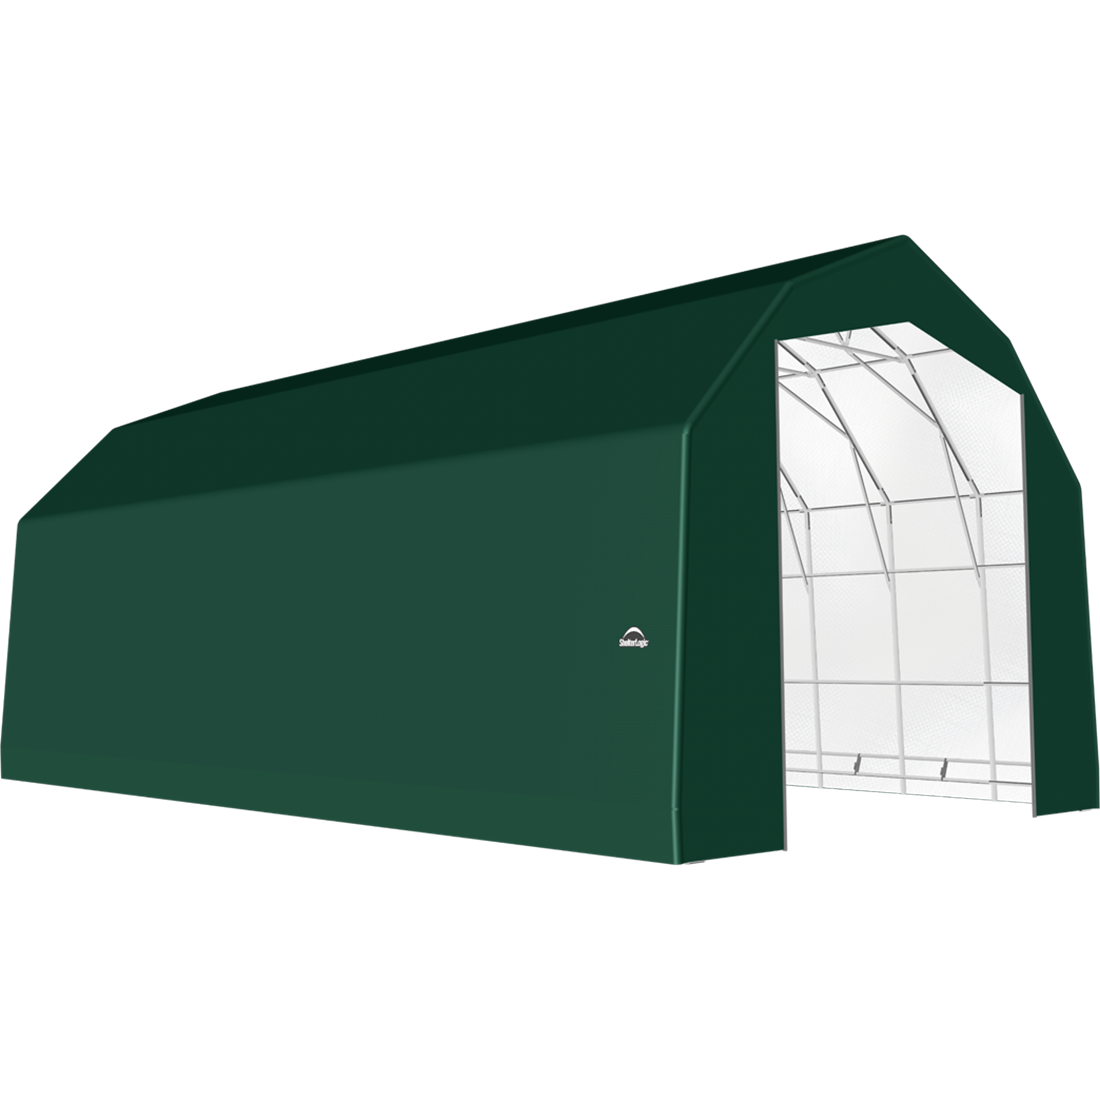 SP Barn 25X36X20 Green 14 oz PE Shelter